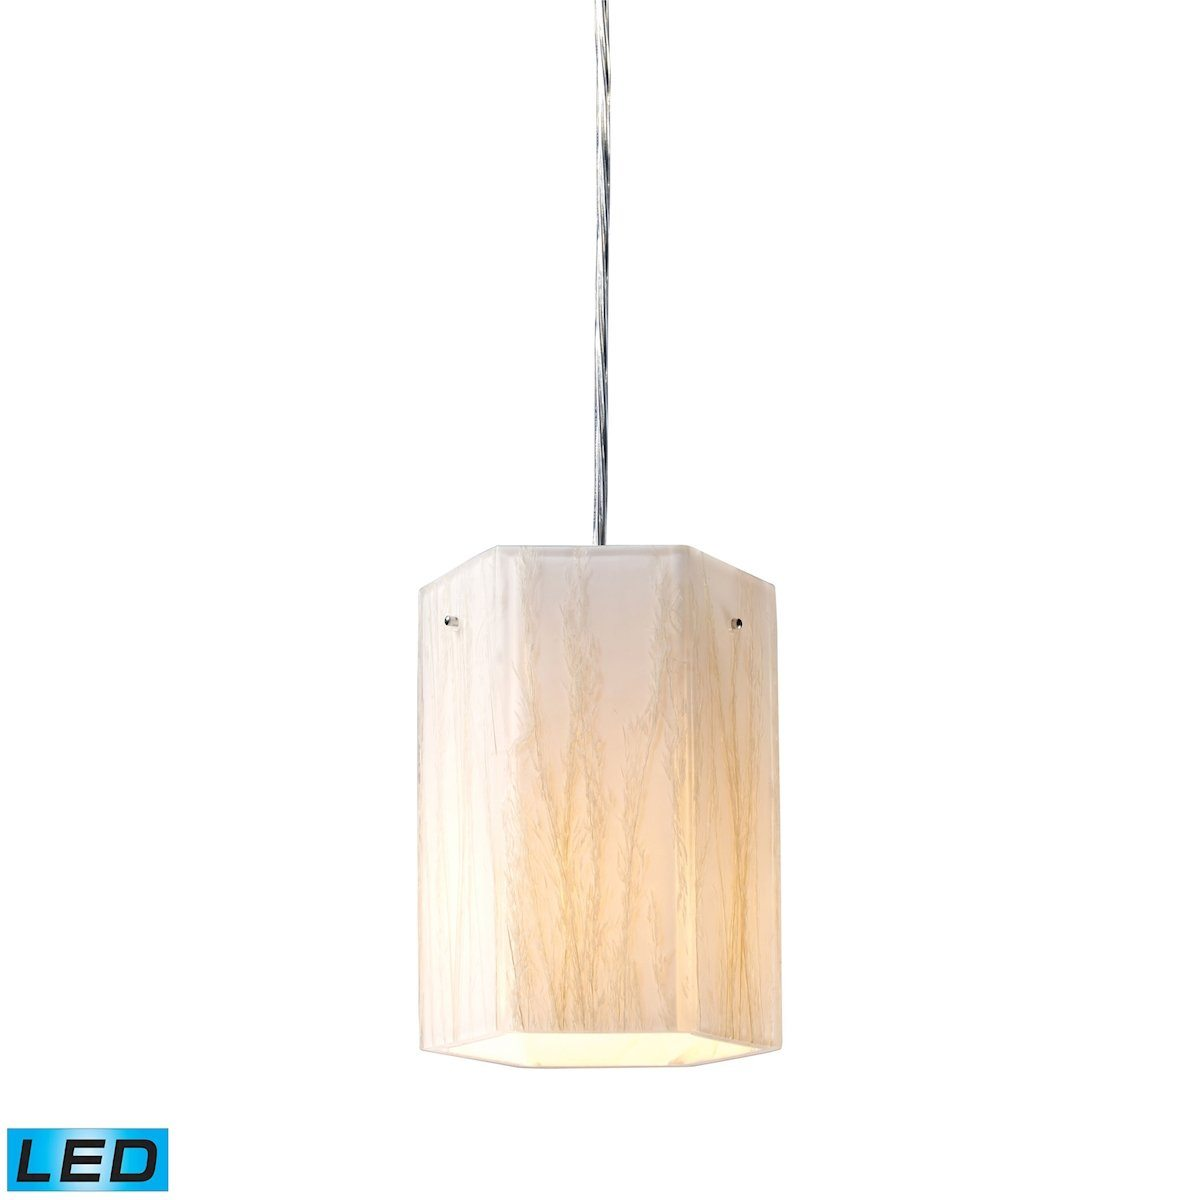 Modern Organics LED Pendant In Polished Chrome And White Sawgrass Ceiling Elk Lighting